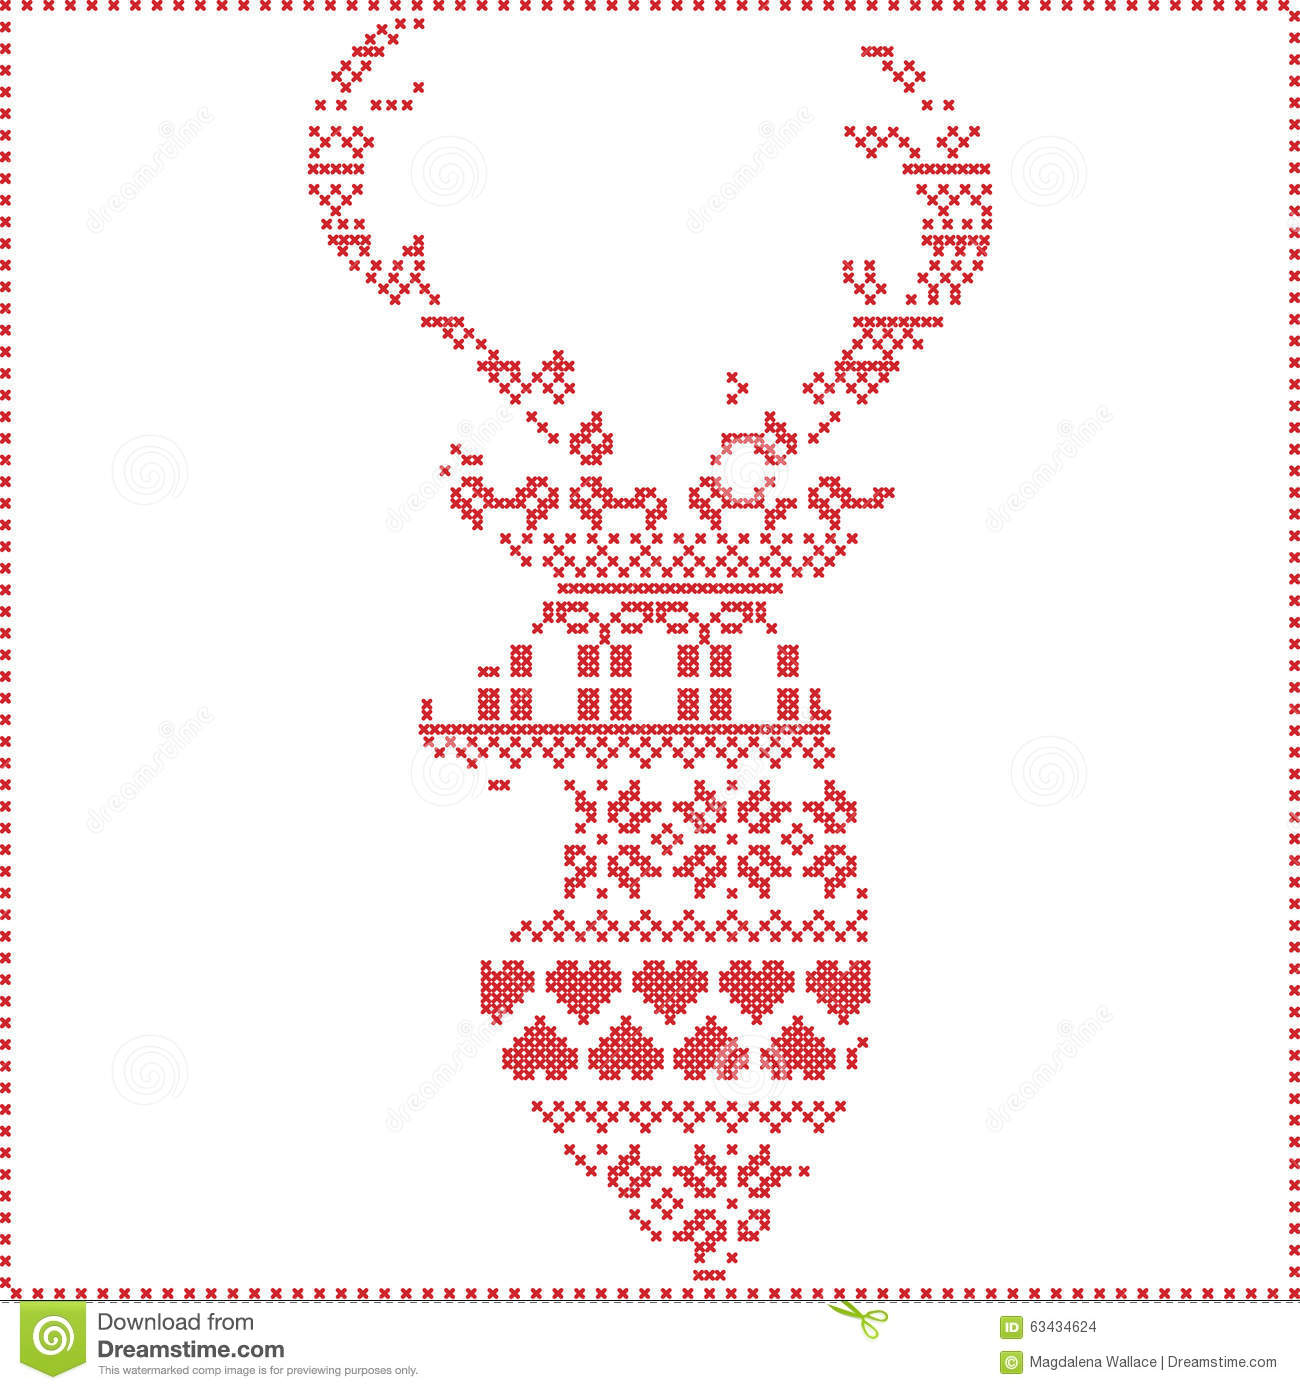 Scandinavian nordic winter stitch knitting christmas pattern in scandinavian nordic winter stitch knitting christmas pattern in in reindeer shape shape including snowflakes xmas trees bankloansurffo Images